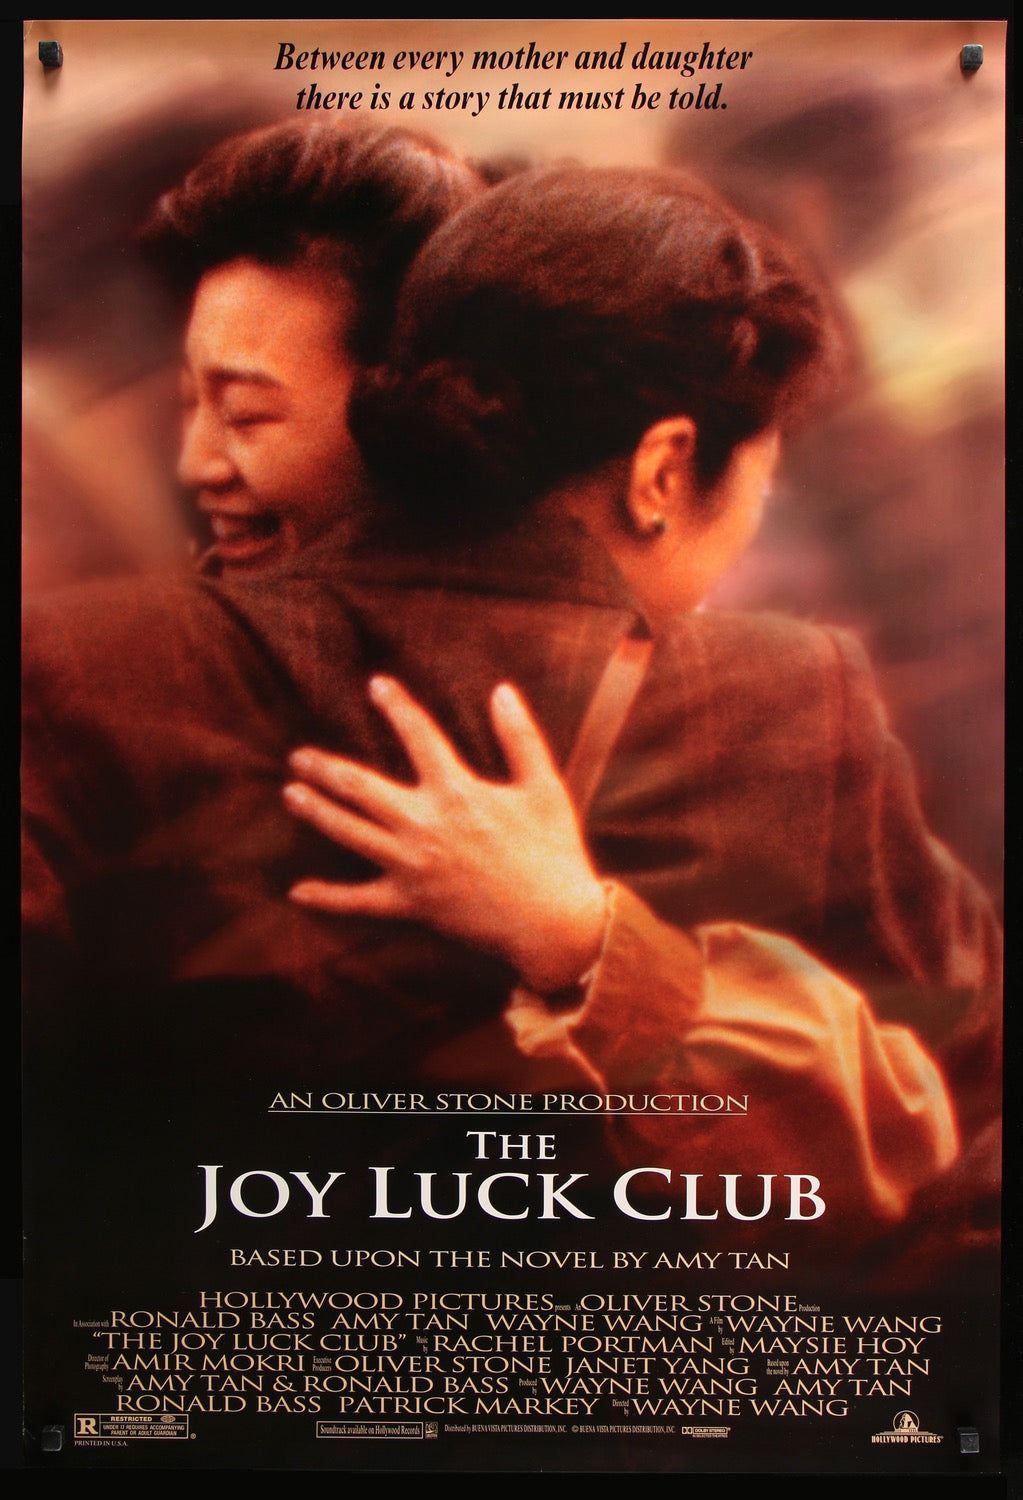 """The Joy Luck Club"" movie poster, one of our favorite movies that explores female relationships!"